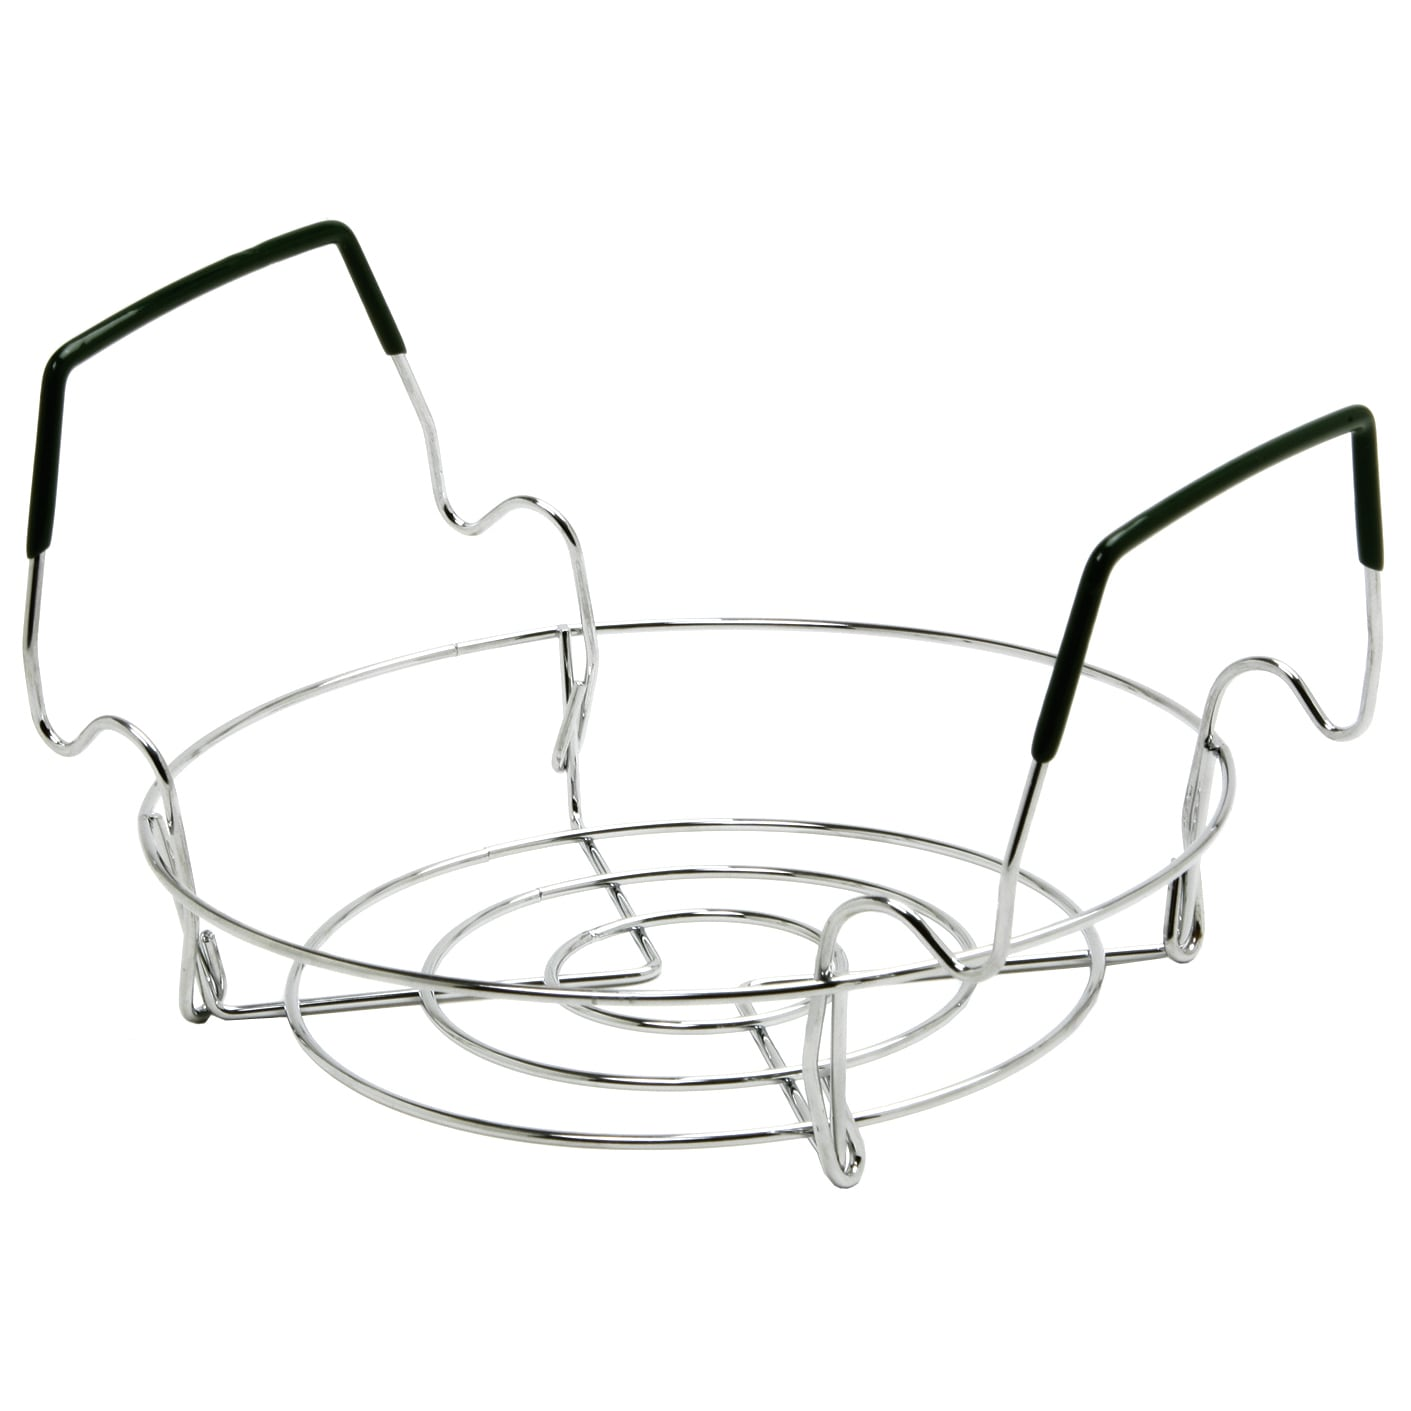 Norpro 646 Small Canning Rack (Small Canning Rack), Grey ...